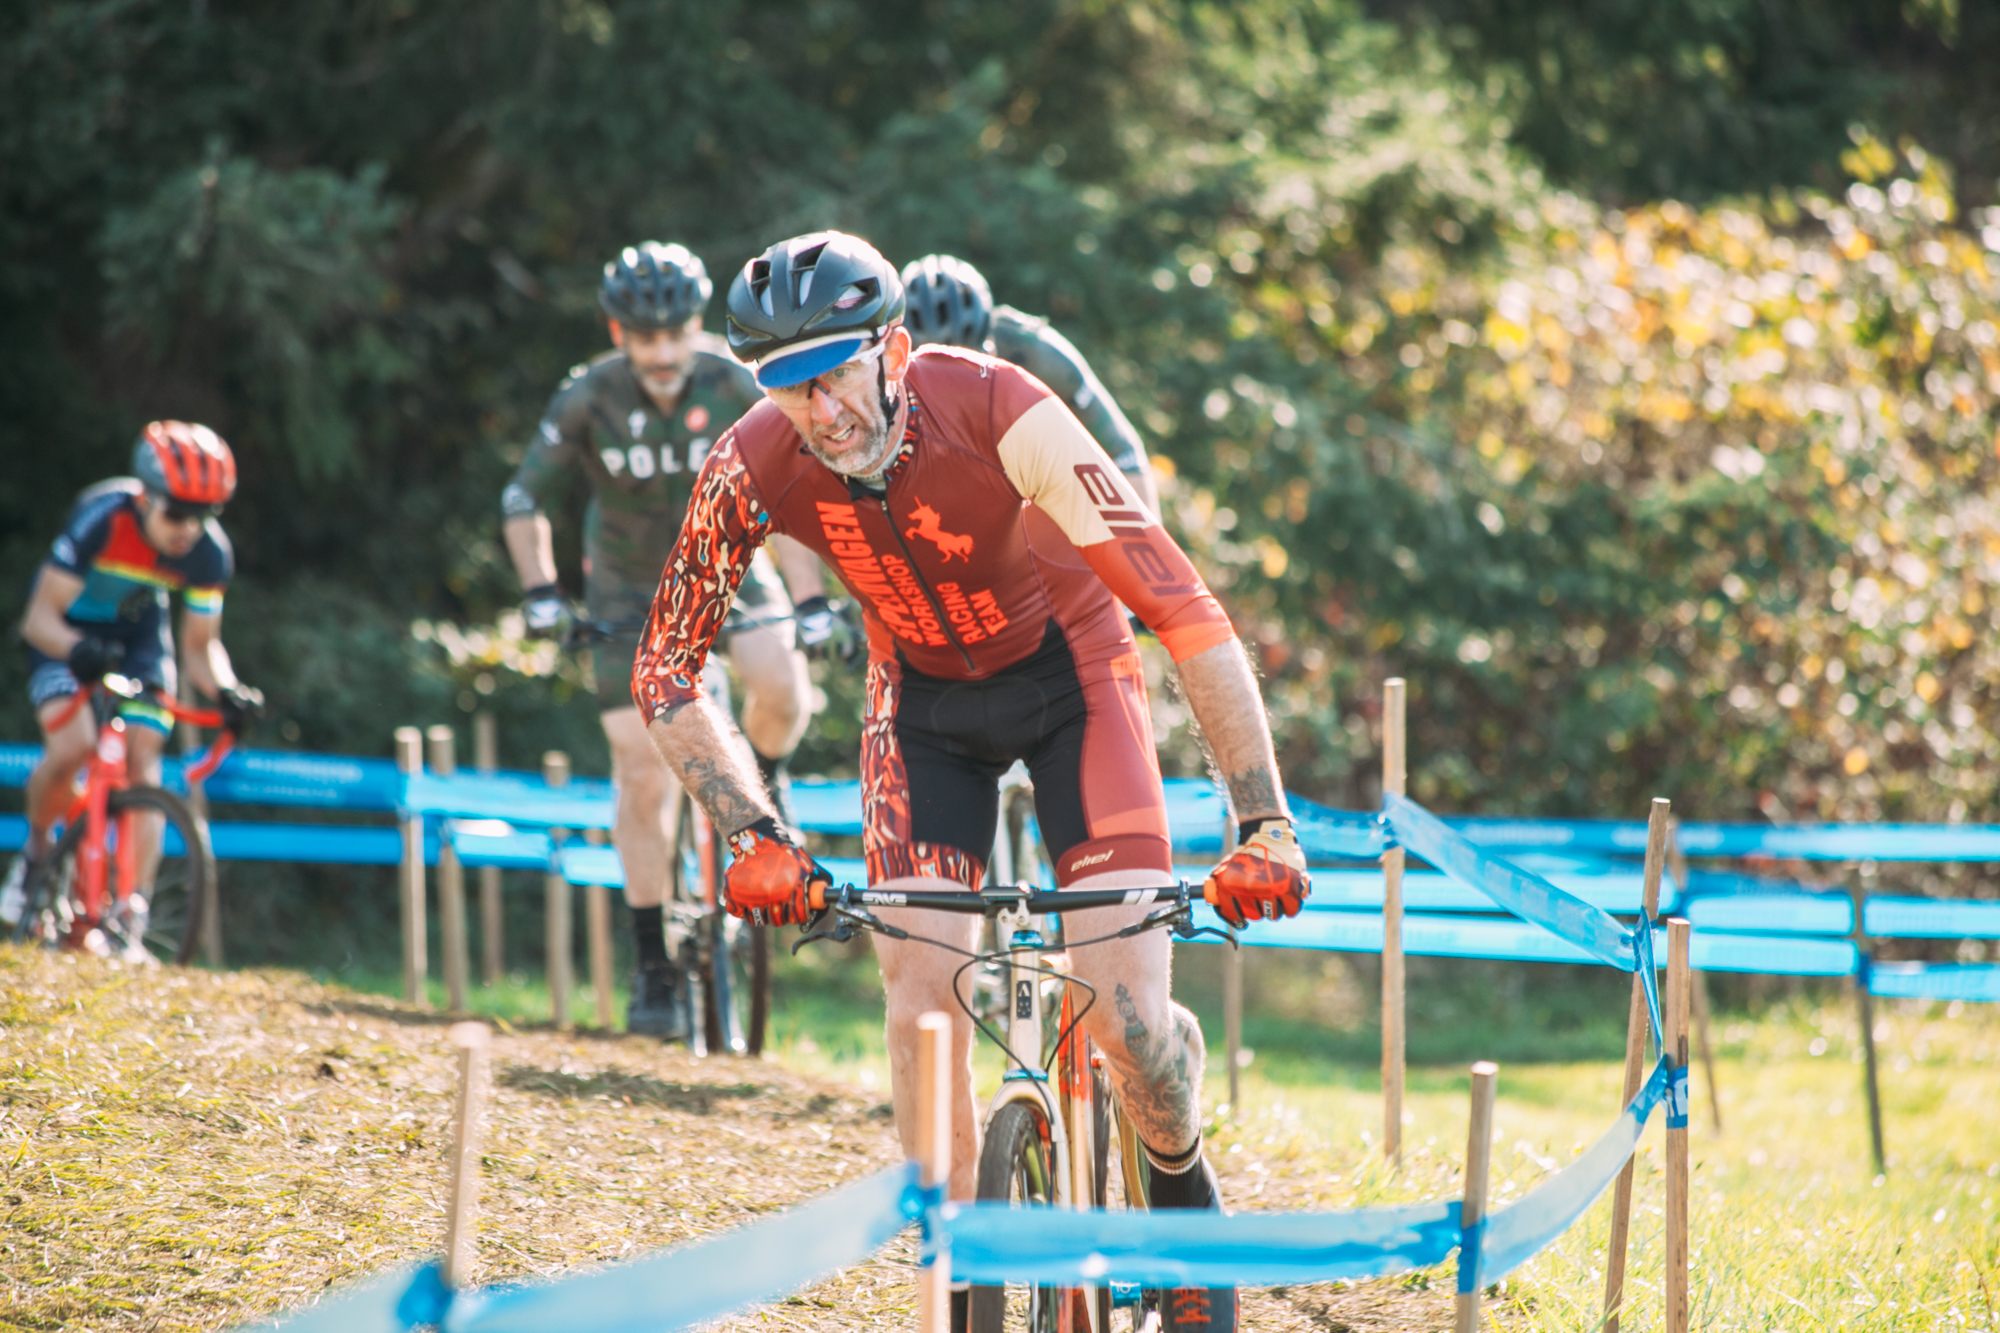 Cyclocross18_CCCX_RainierHS-97-mettlecycling.jpg